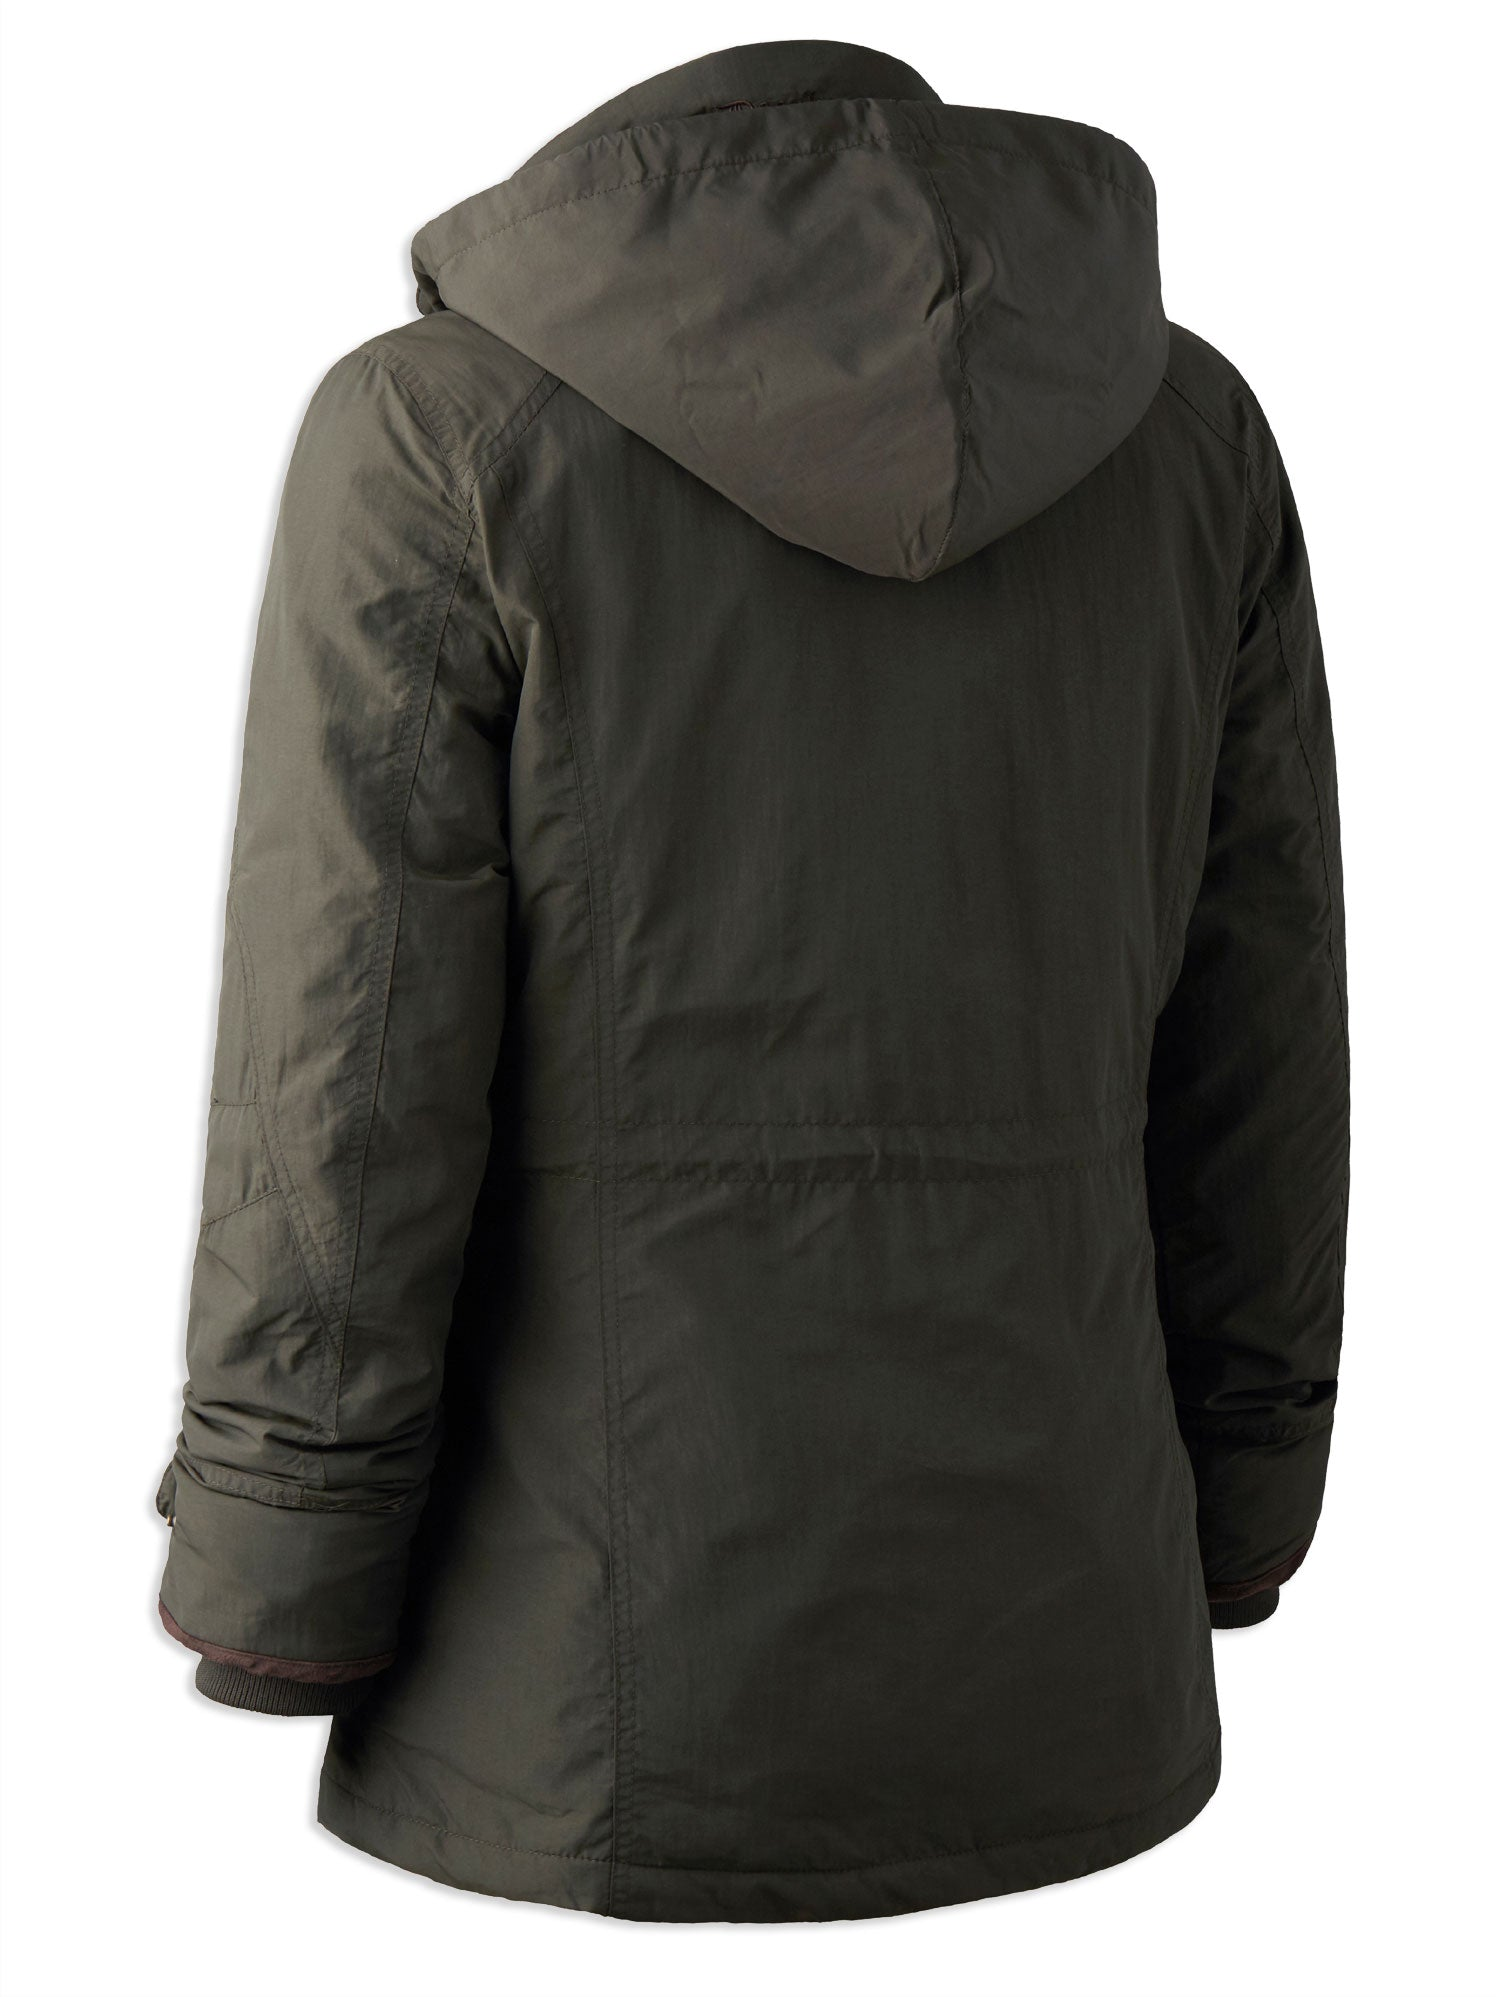 rear view Deerhunter Lady Josephine Jacket Graphite green